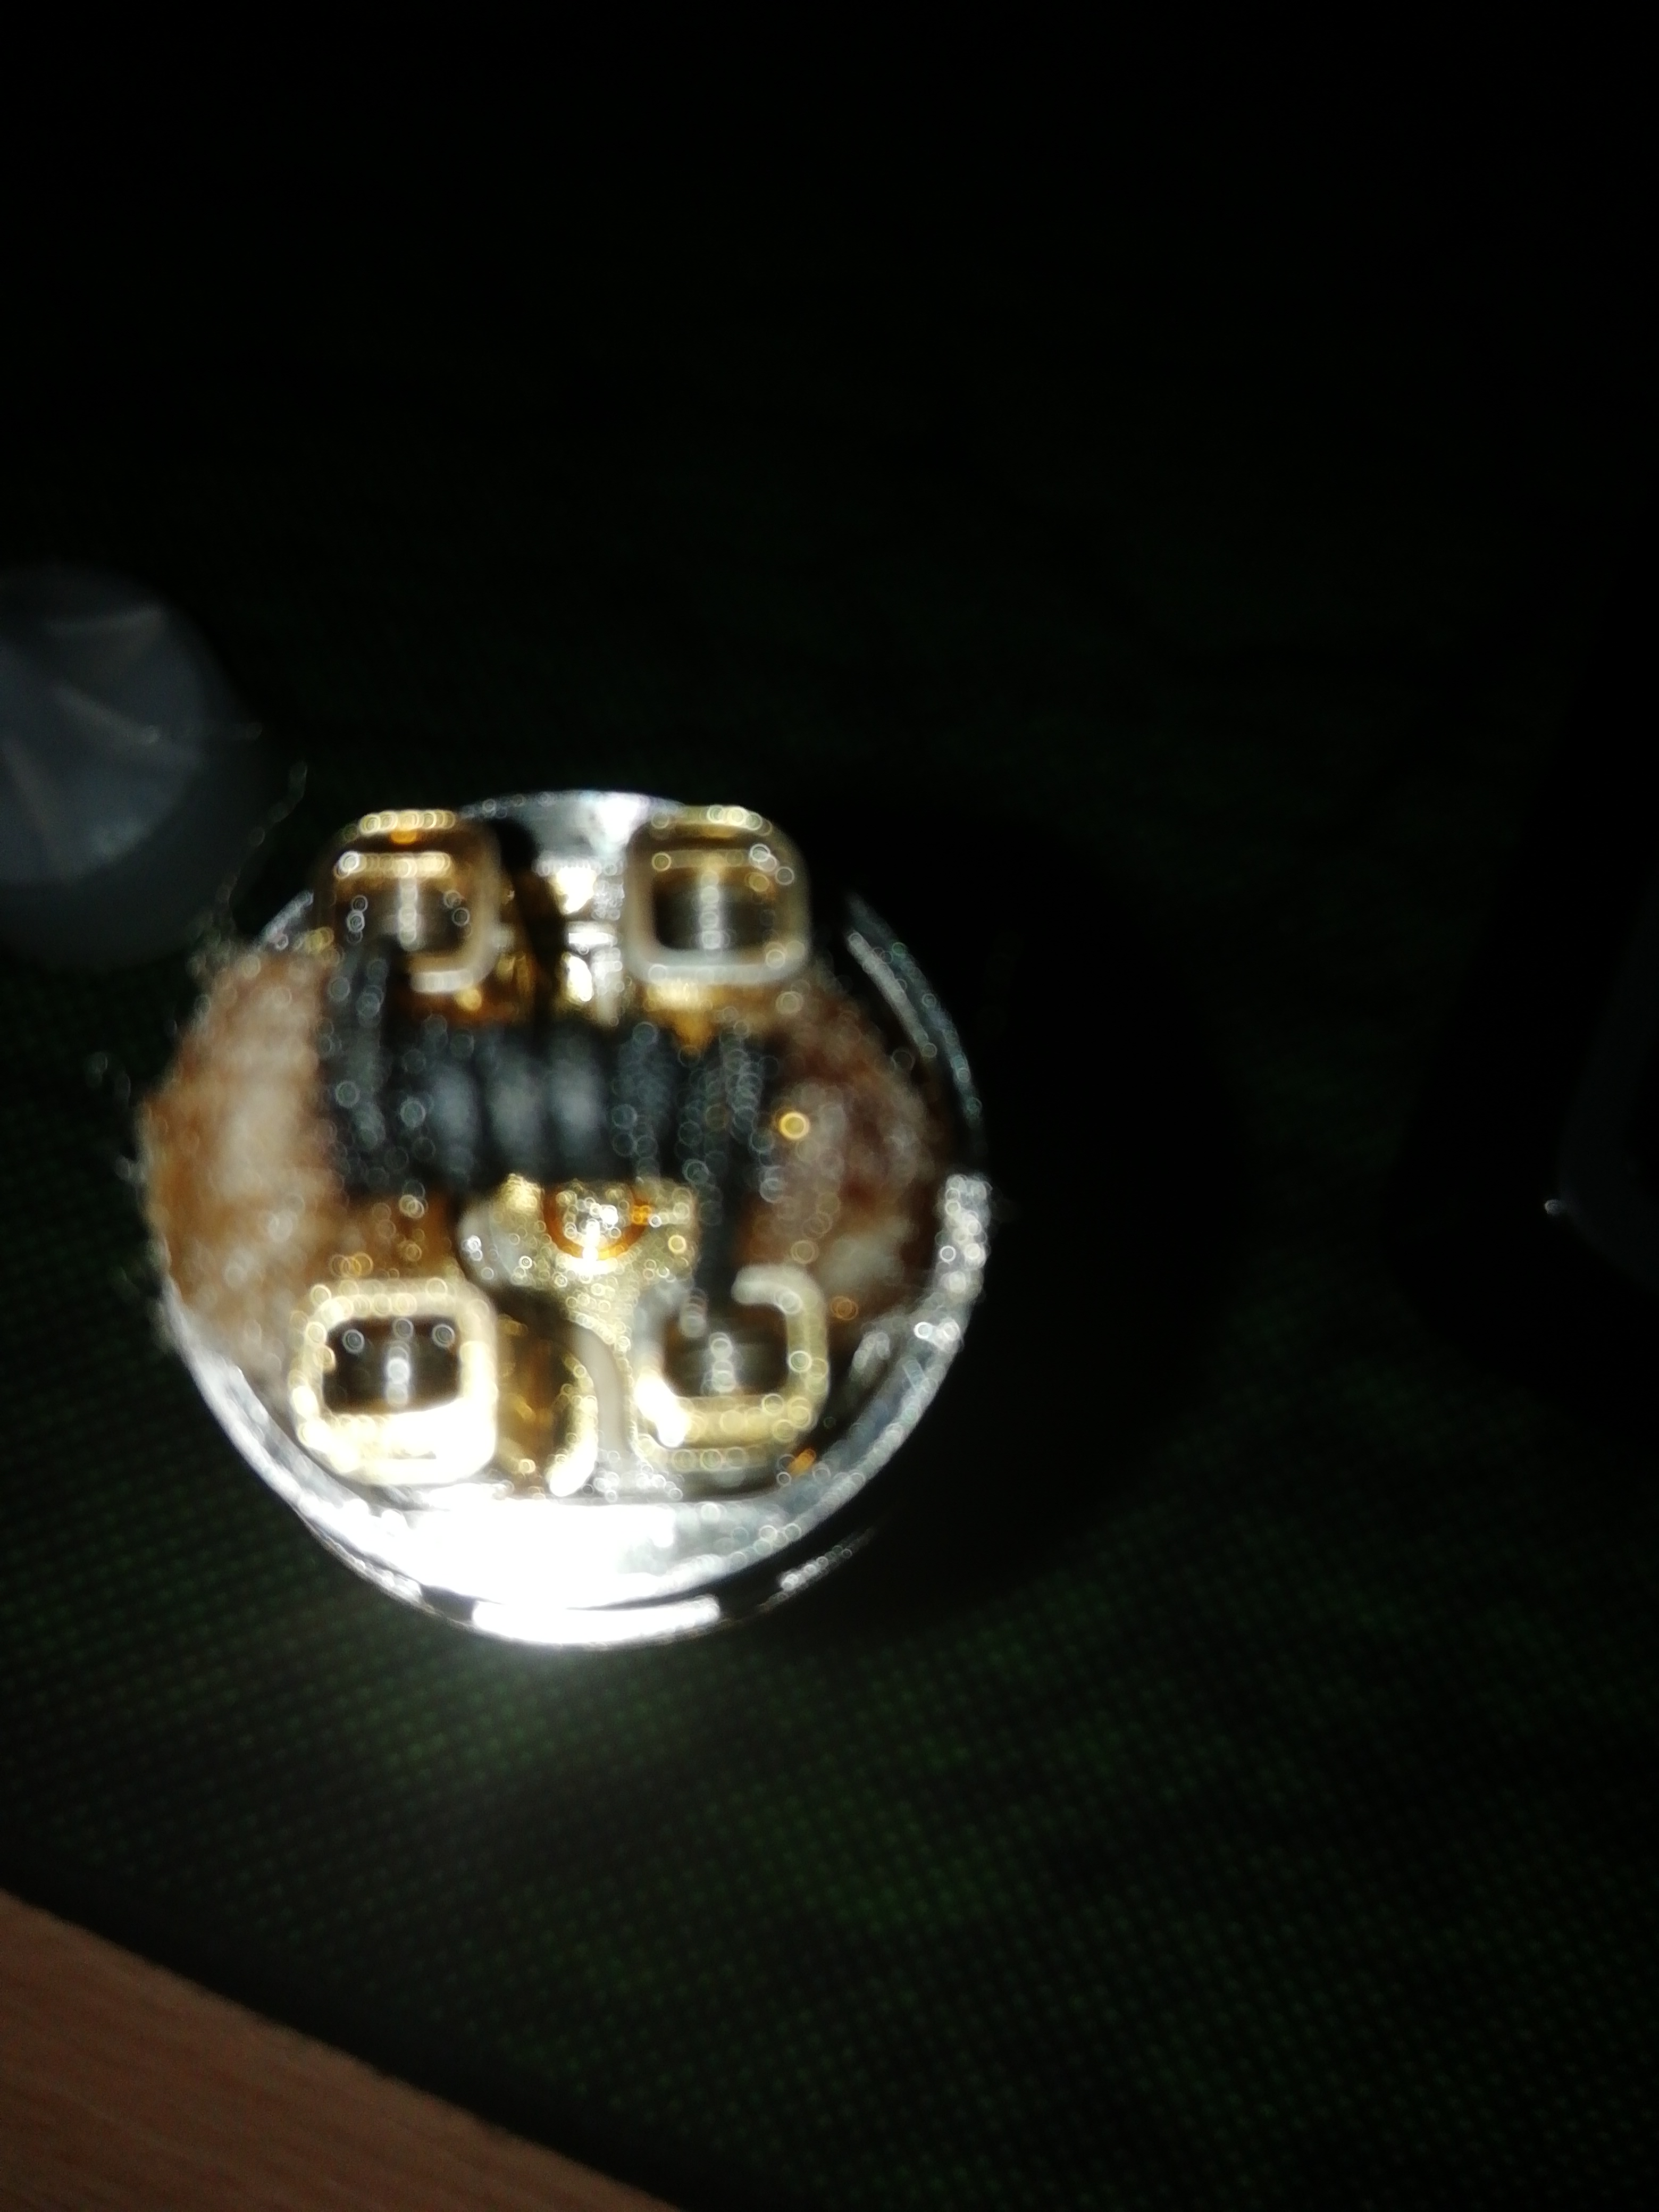 drop RDA single coil build | Vaping Forum - Planet of the Vapes